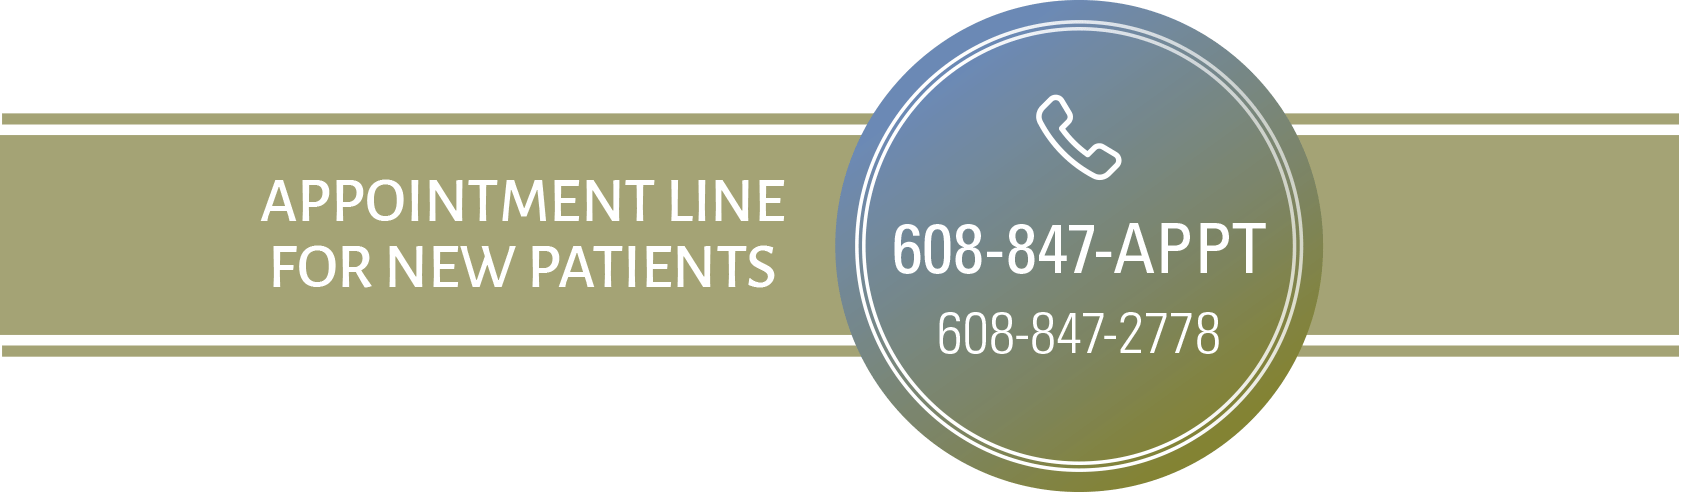 New Patient Appointment Line 608-847-2778